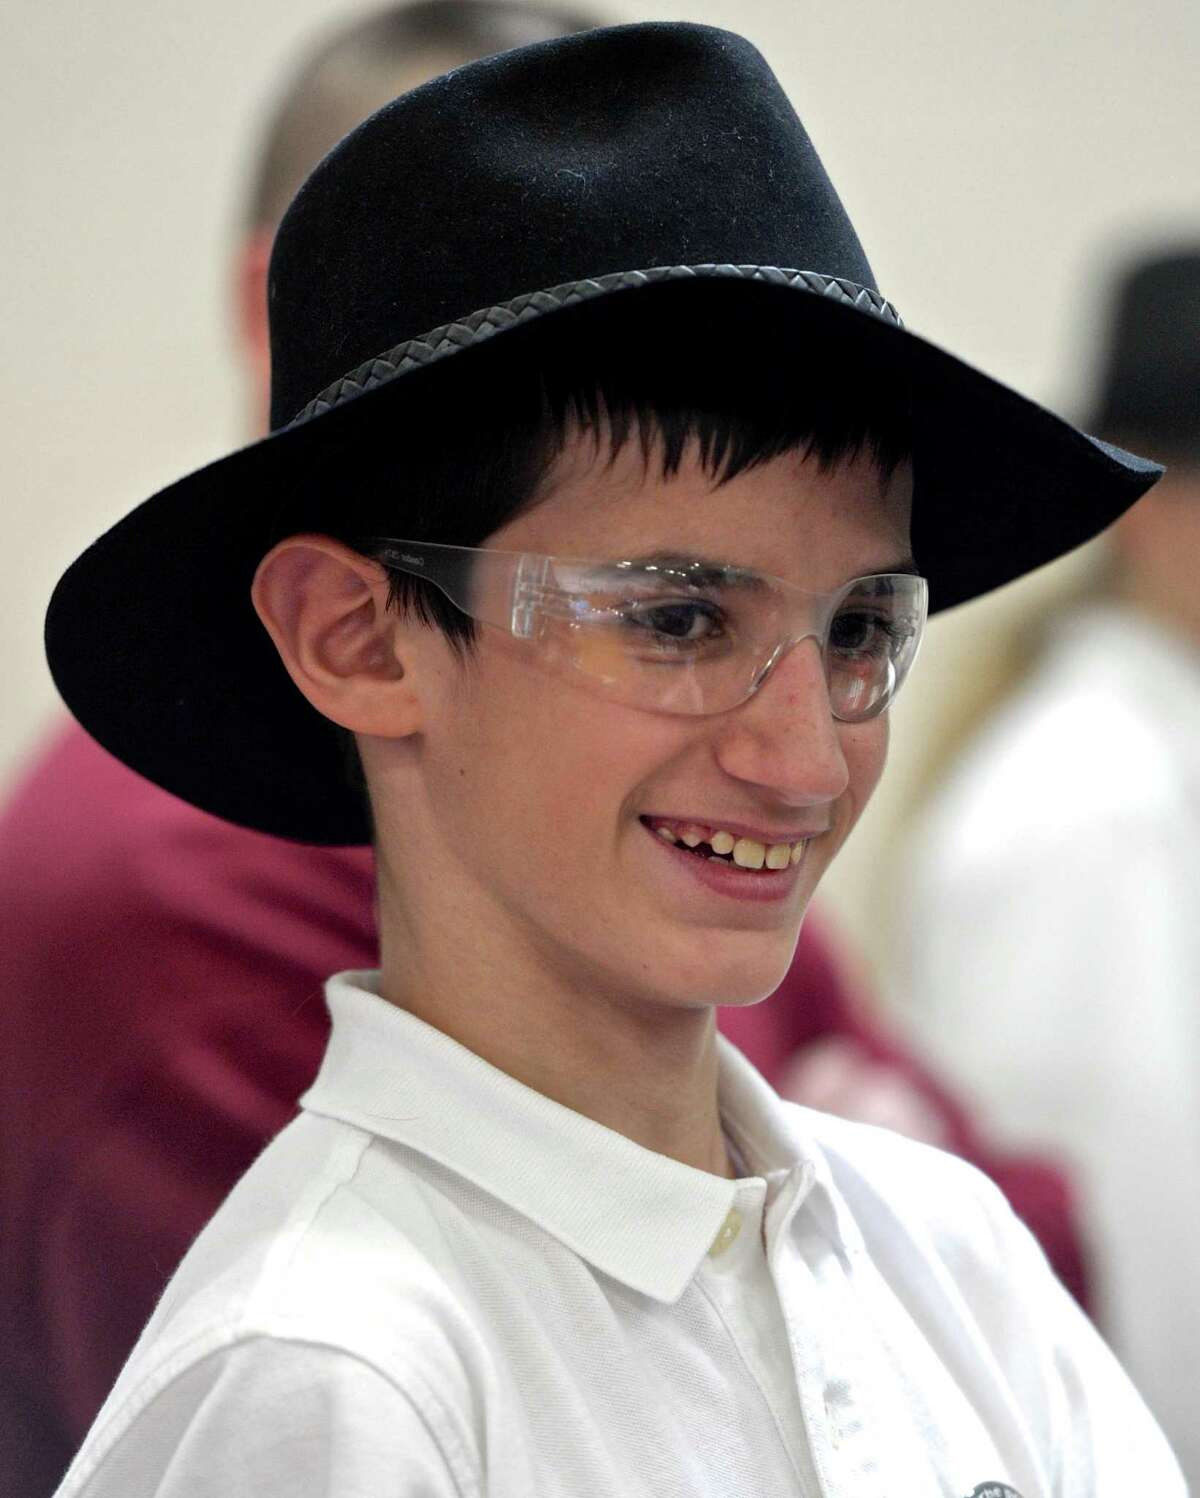 """Tyler Anvryzeck, 12, from the """"Northwest Regional Gearheads"""" team, displays his hat that the team was wearing while they compete in the Connecticut FIRST Tech Challenge (FTC) robotics qualifying event, held at Ridgefield Academy. Saturday, November 21, 2015, in Ridgefield, Conn."""